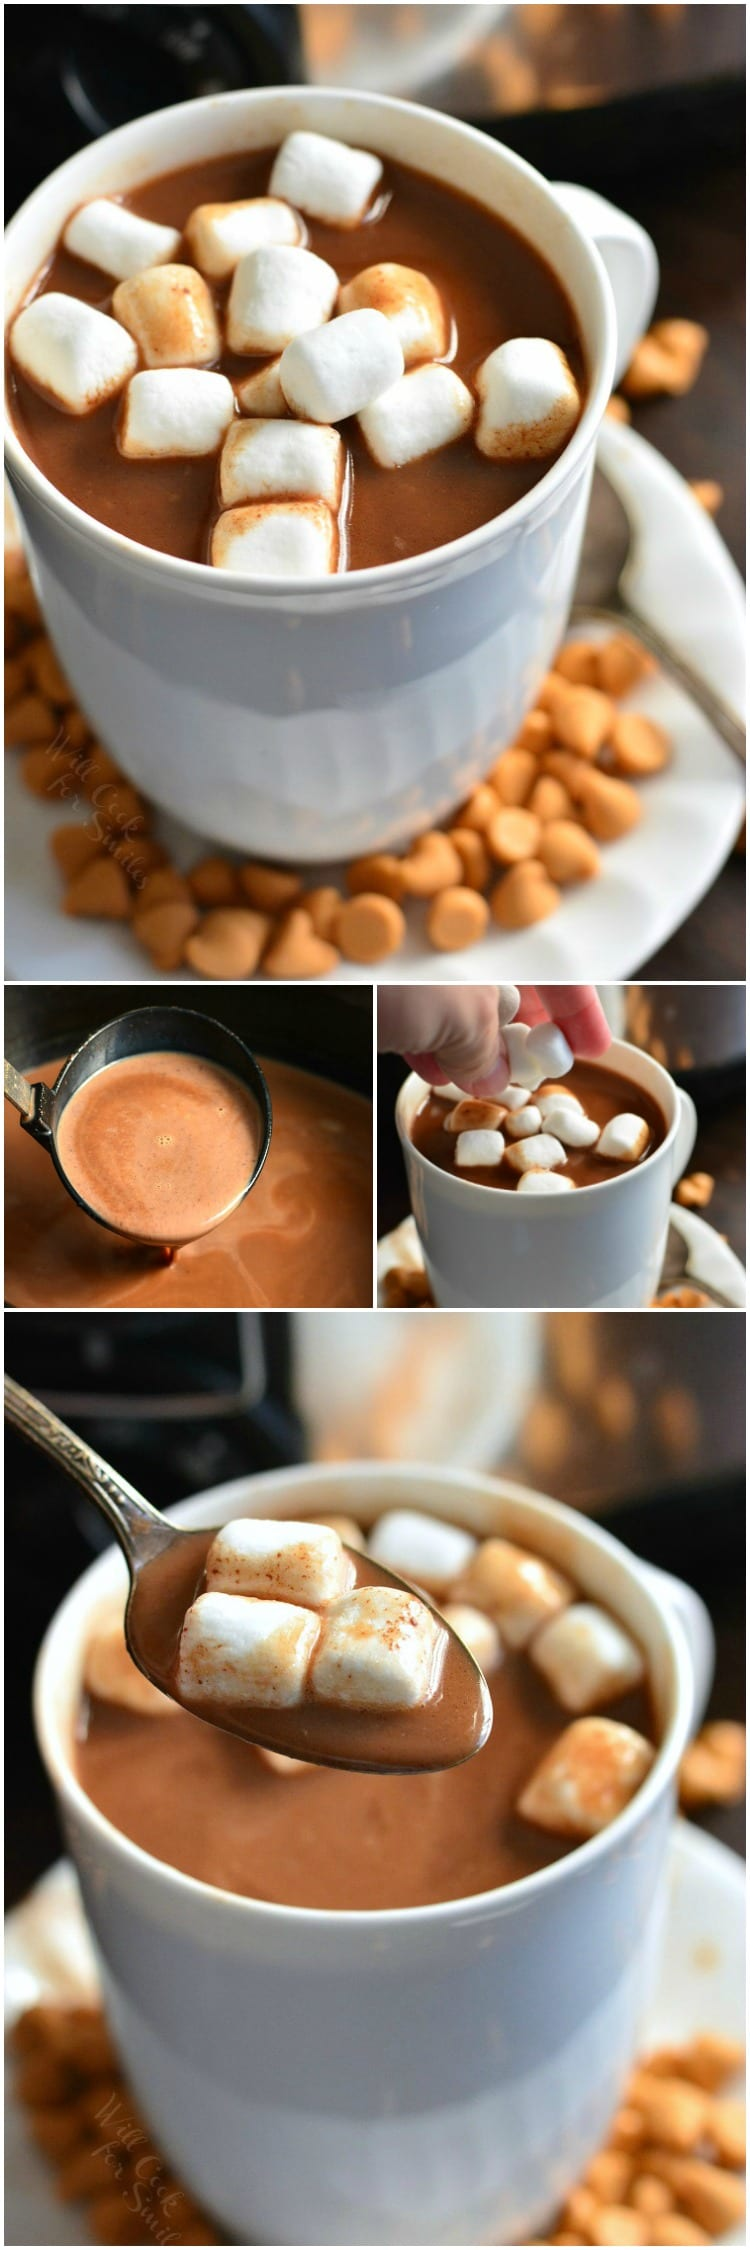 Crock Pot Butterscotch Hot Chocolate. The PERFECT drink to serve at dinners and parties in the cold weather. It's sweet, creamy, and made in a crock pot for convenience. #hotchocolate